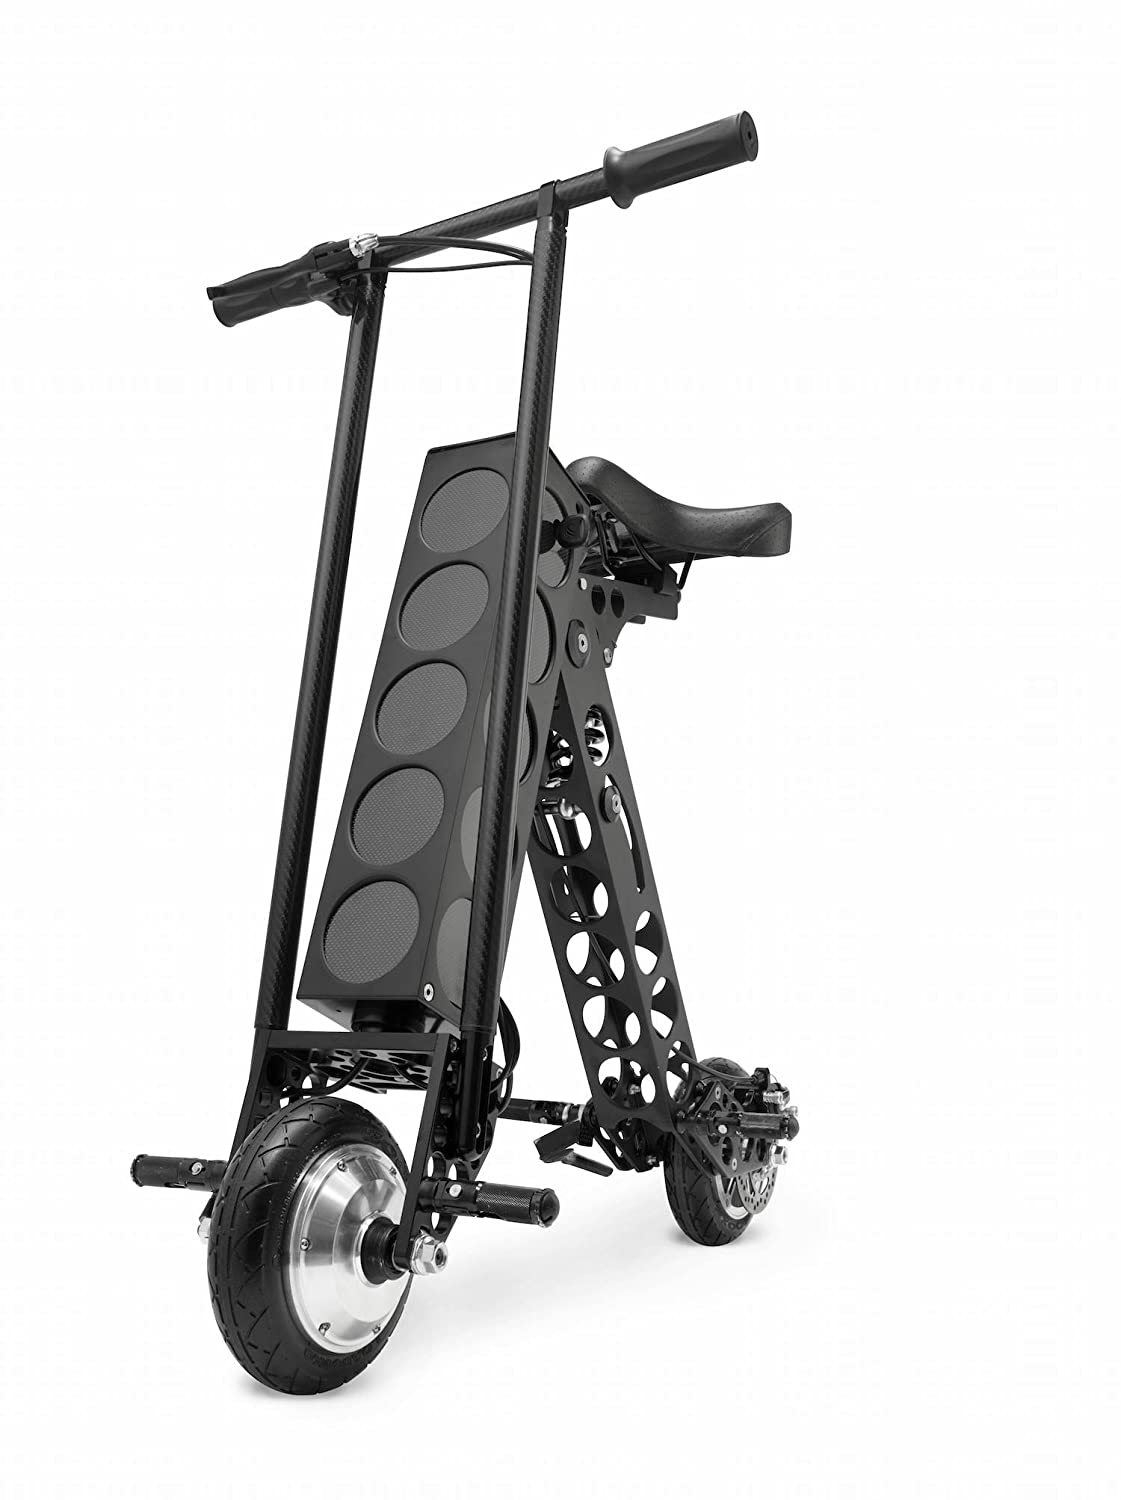 Urb E Folding Electric Scooter Classic Black Sports E90 Parts Diagram Outdoors